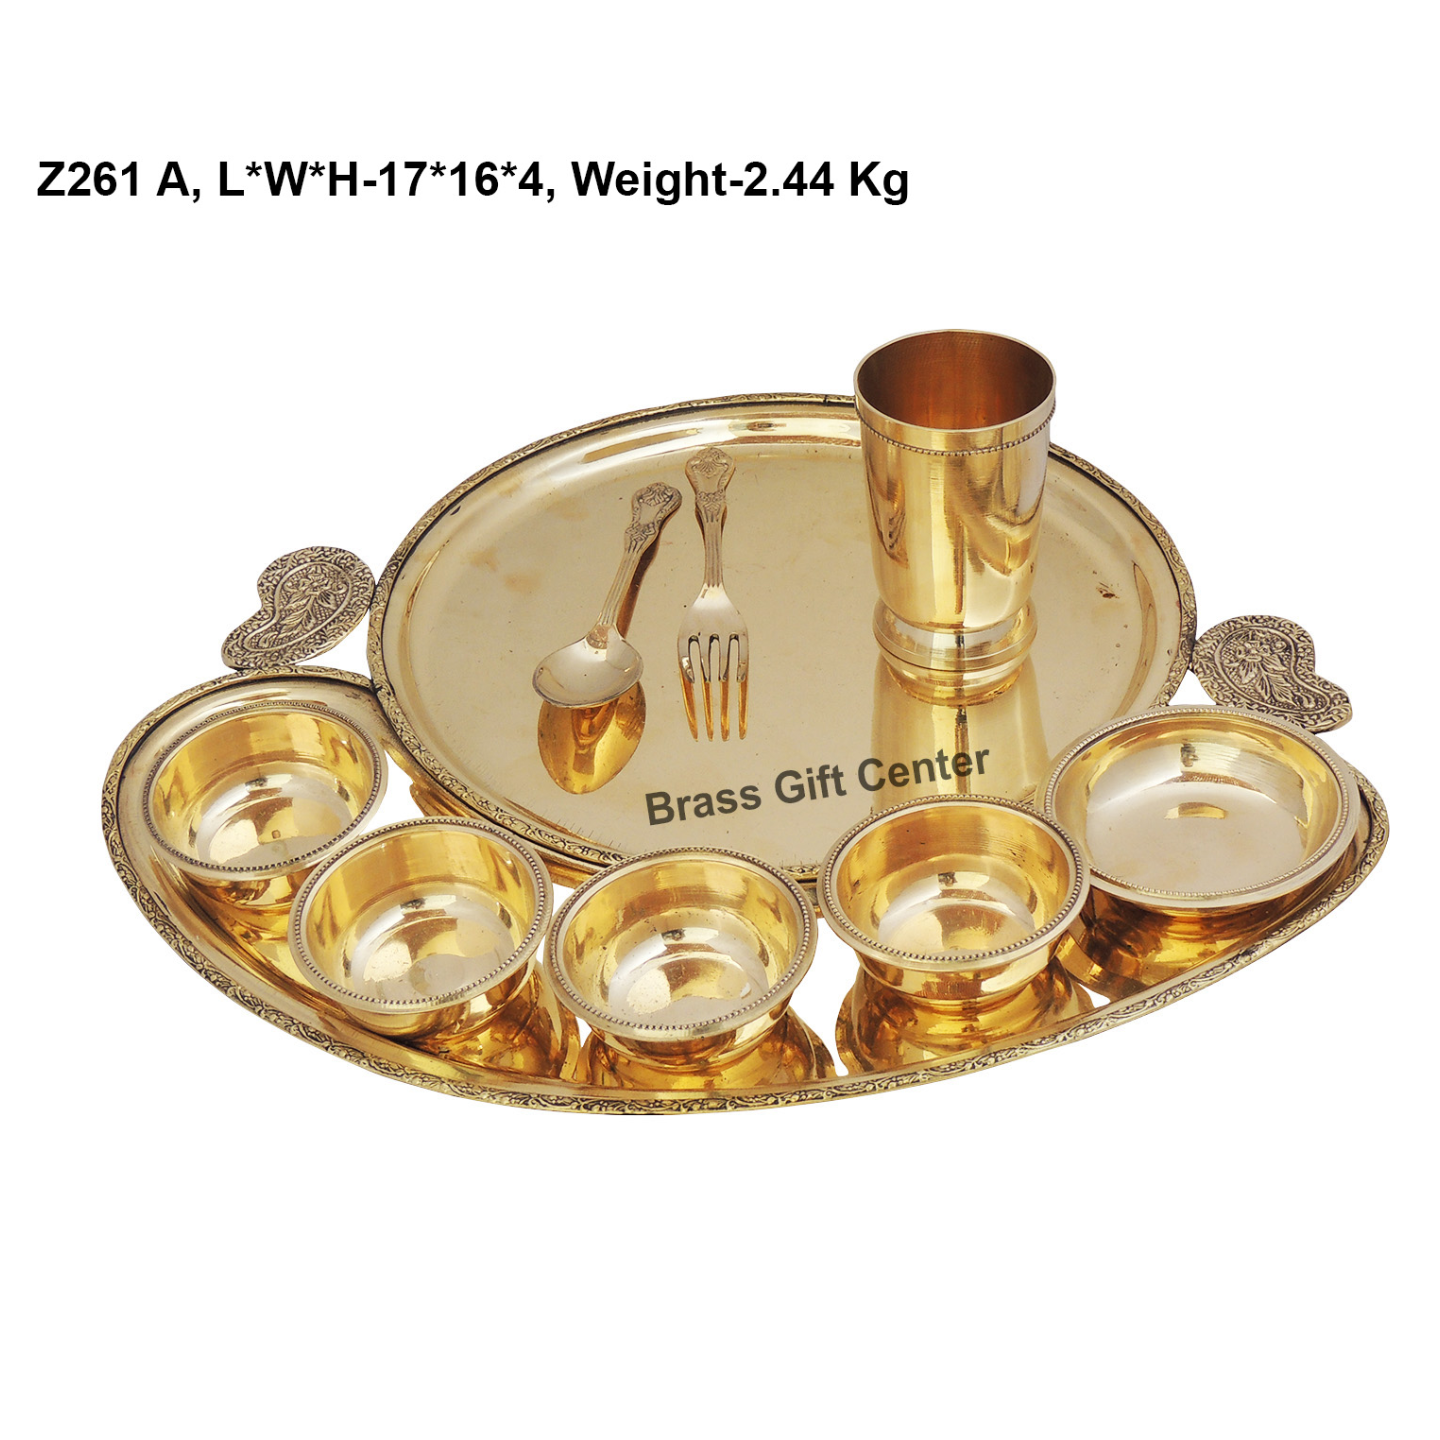 Brass Thali, Brass Table Thali, Thaali,  , Brass Plate,  , Thali Set, Yellow Brass Thali, Brass Diner Set, Dinnor Set, Dinner Items, Brass Dinner